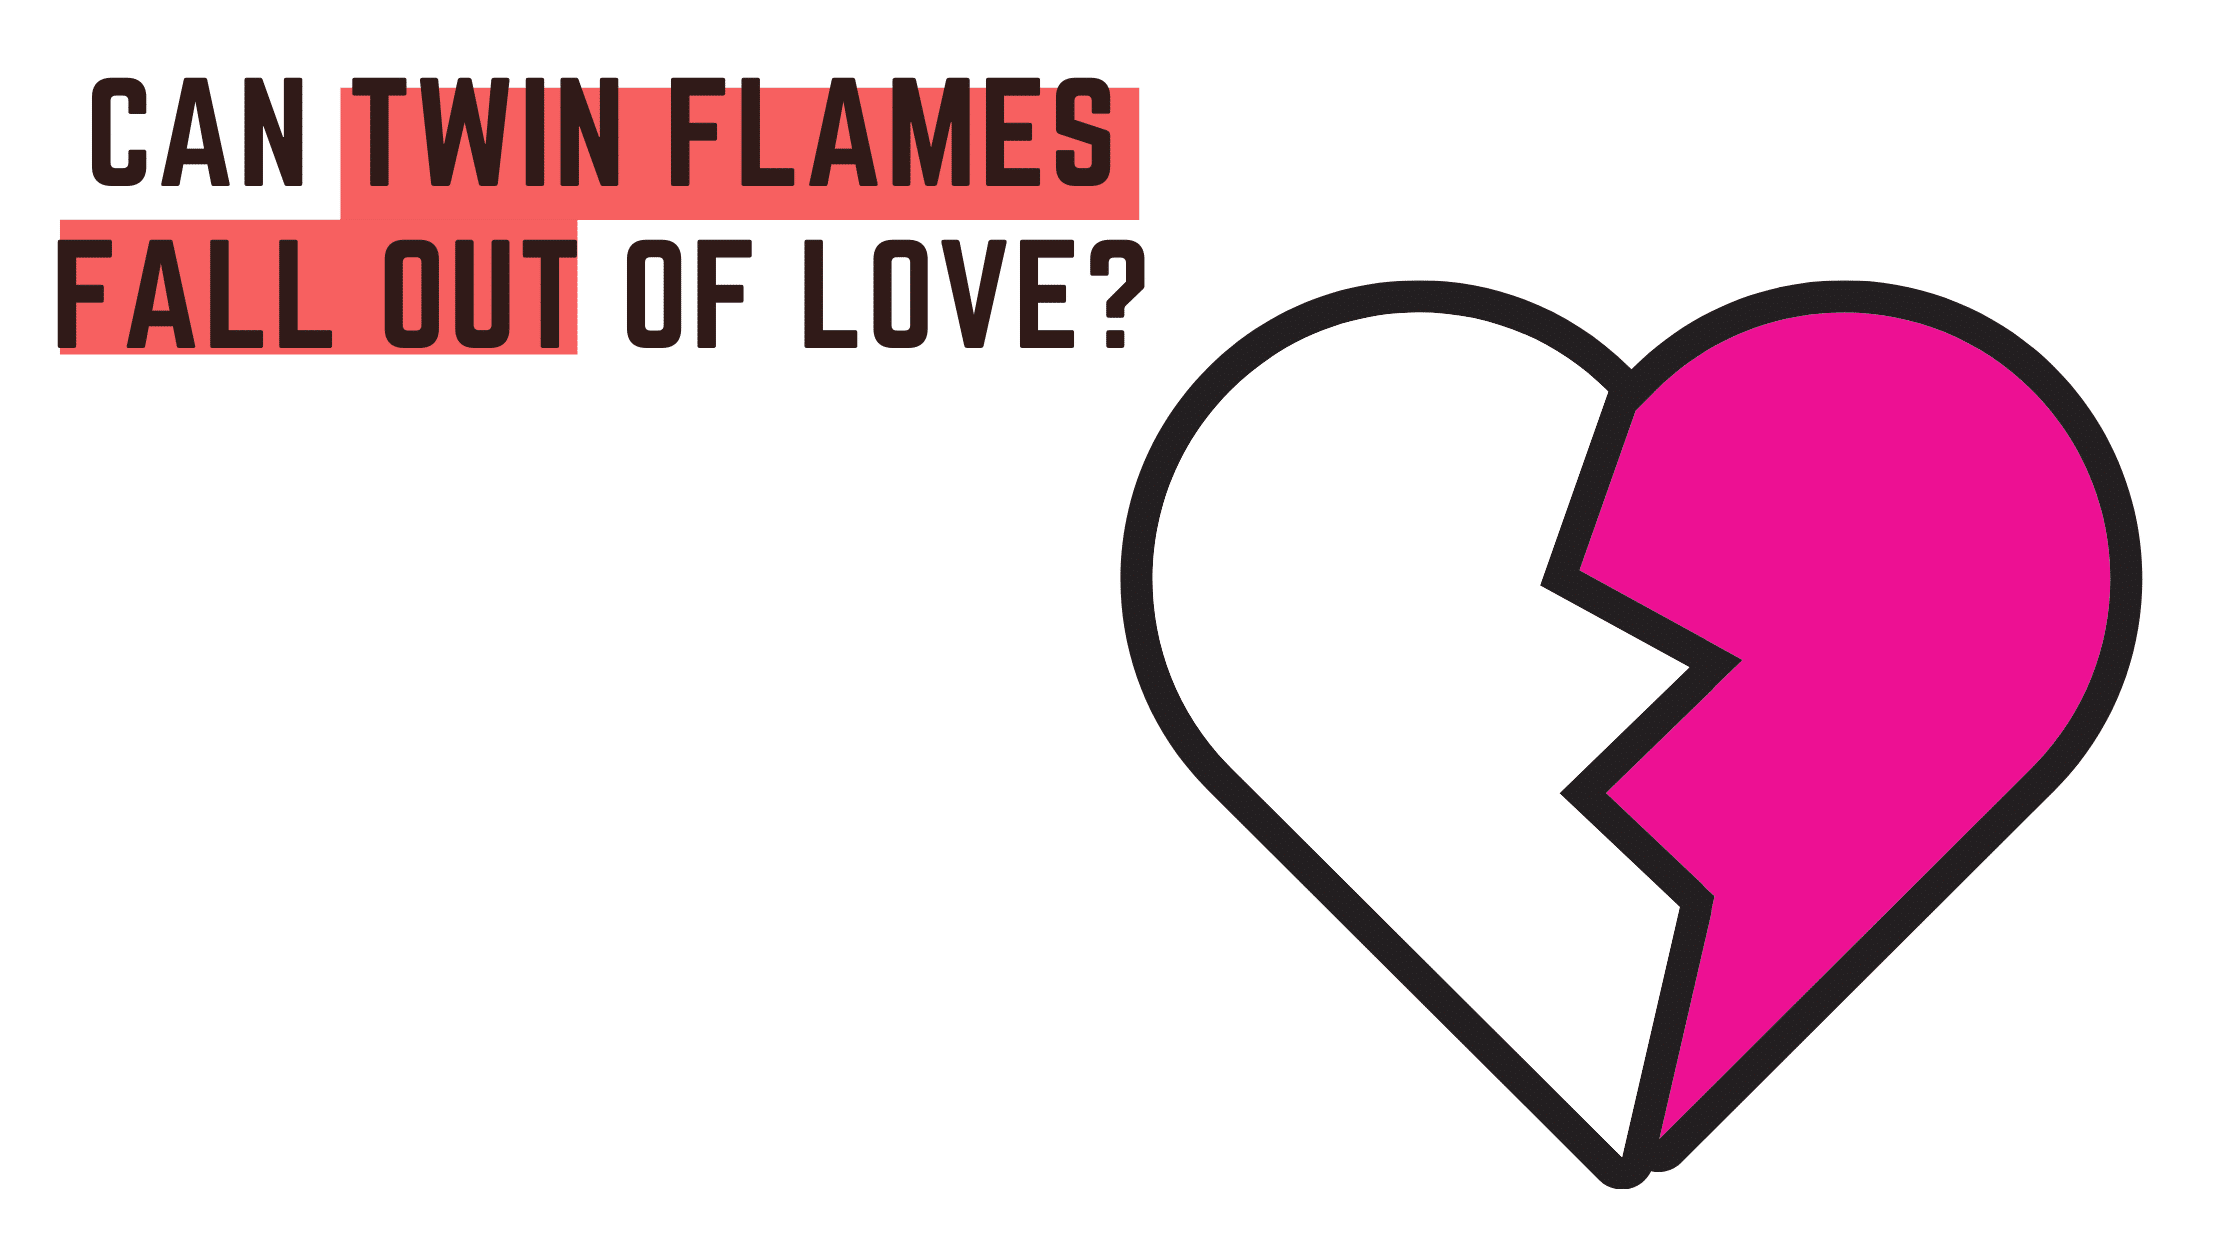 Can Twin Flames Fall out of Love?